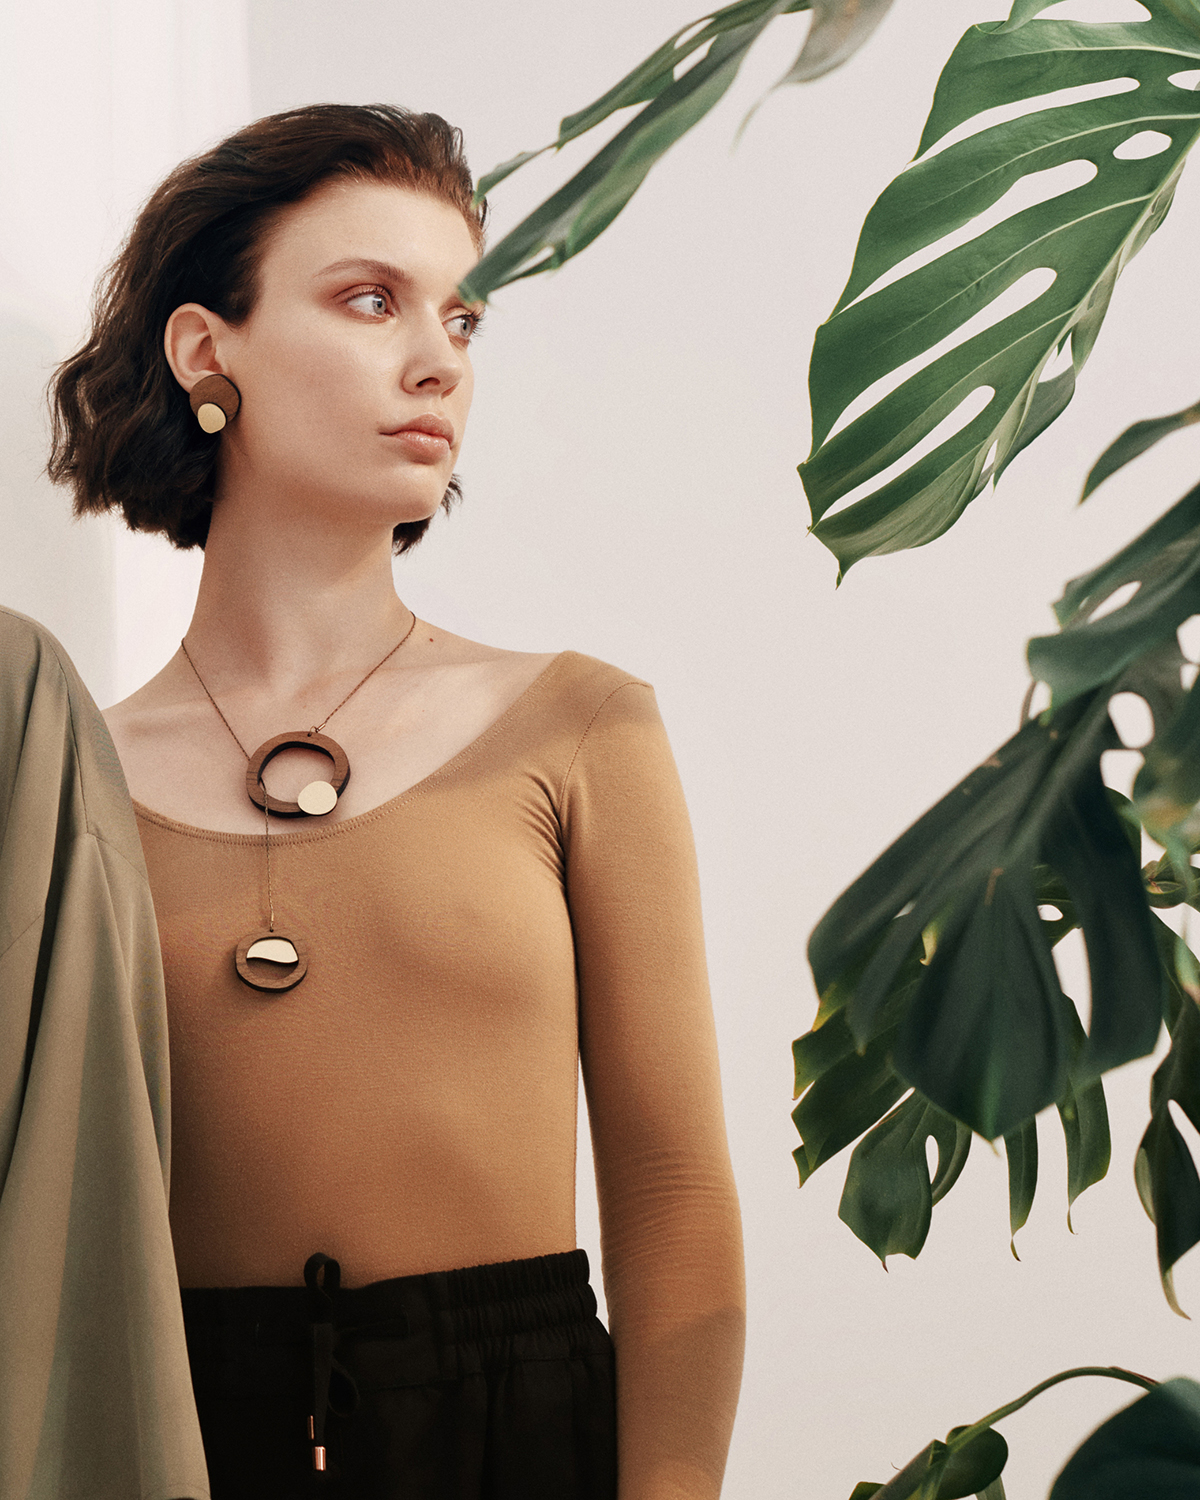 Flow necklace | Lasercut jewellery | Rename jewelry | Made in Belgrade